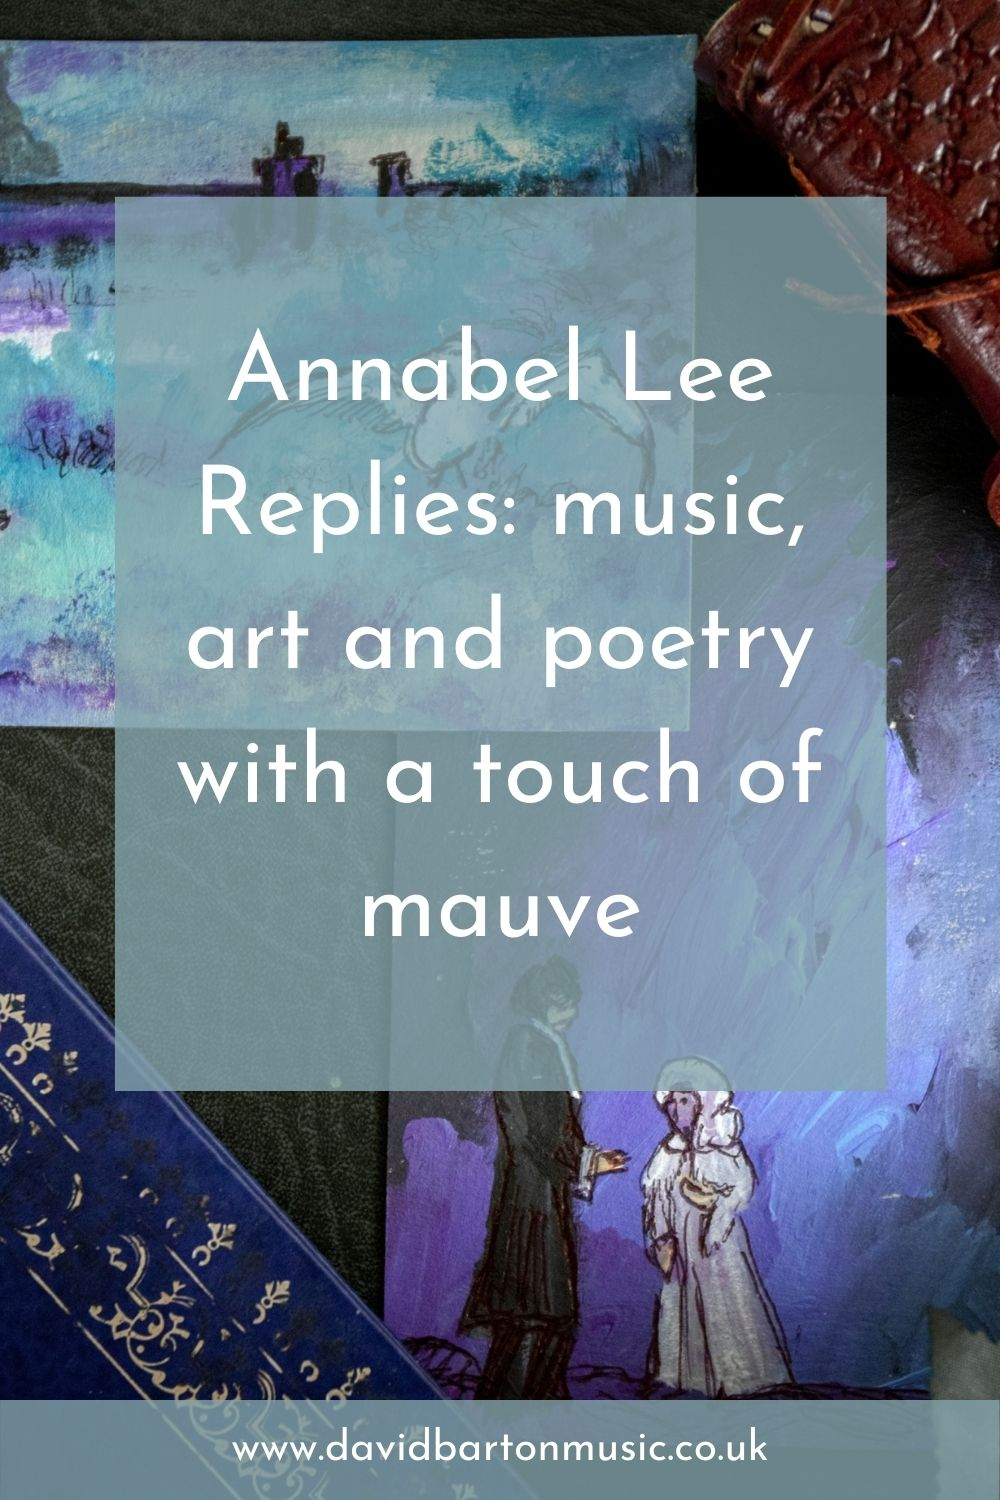 Annabel Lee Replies: music, art and poetry with a touch of mauve - Pinterest Graphic